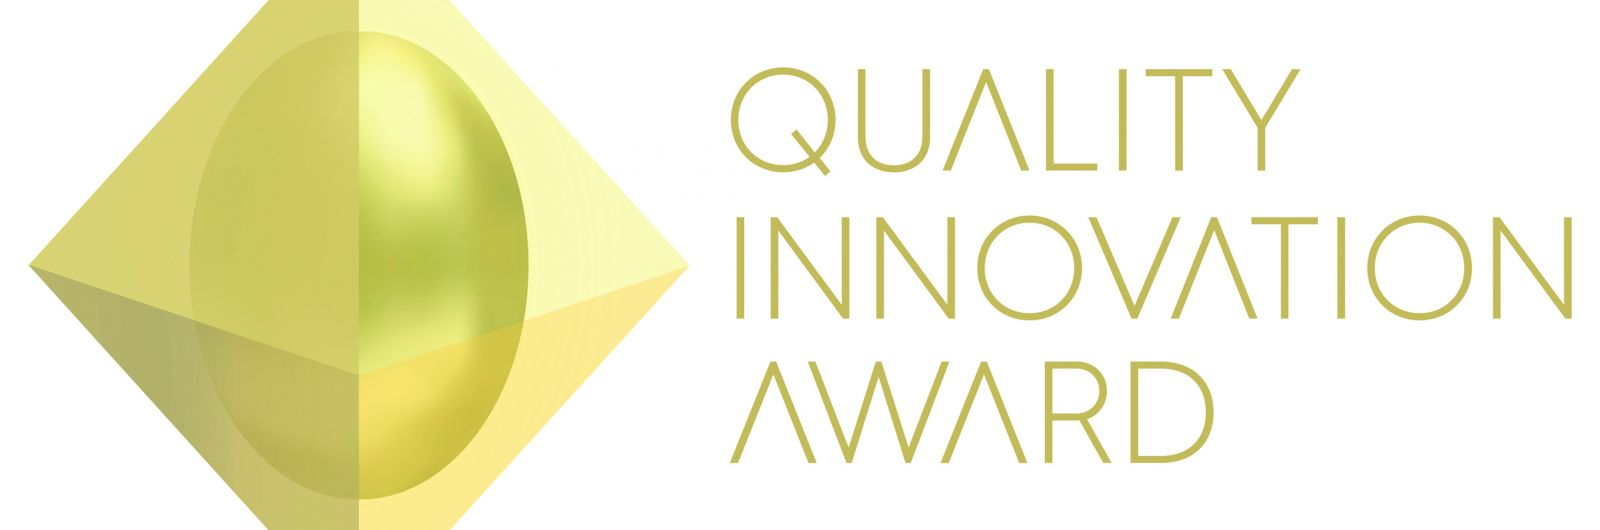 Quality Innovation Award <br/>